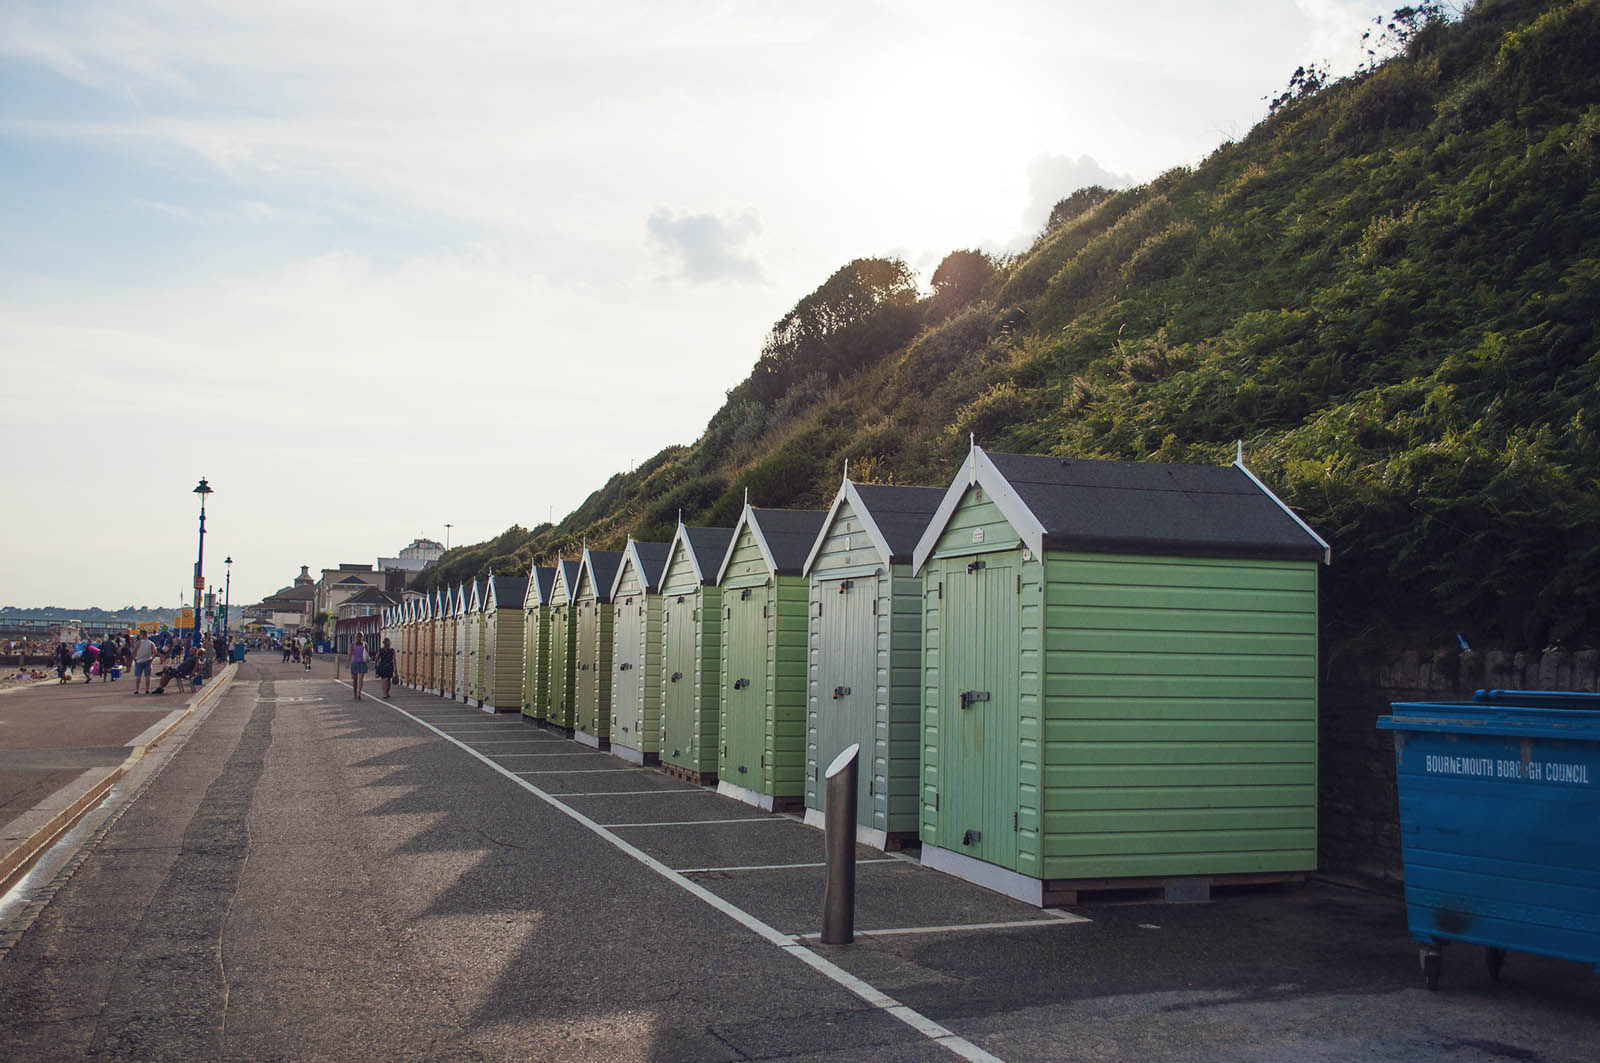 The colourful huts.